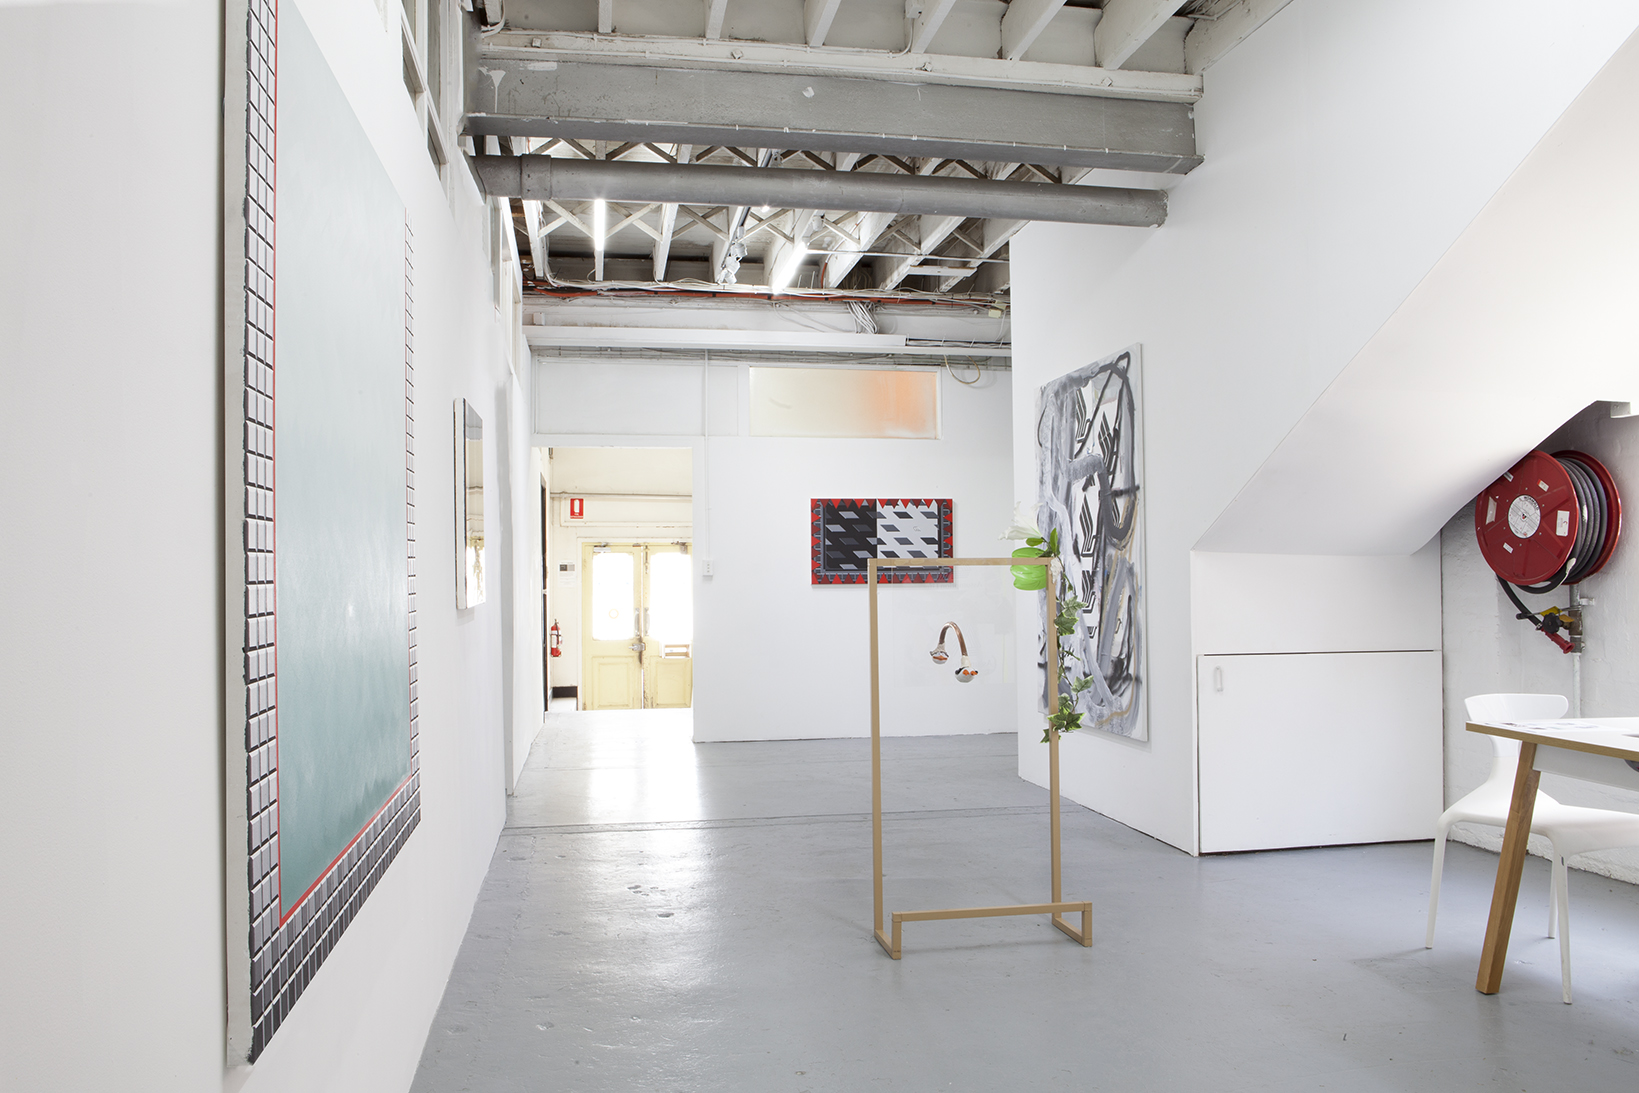 Install view